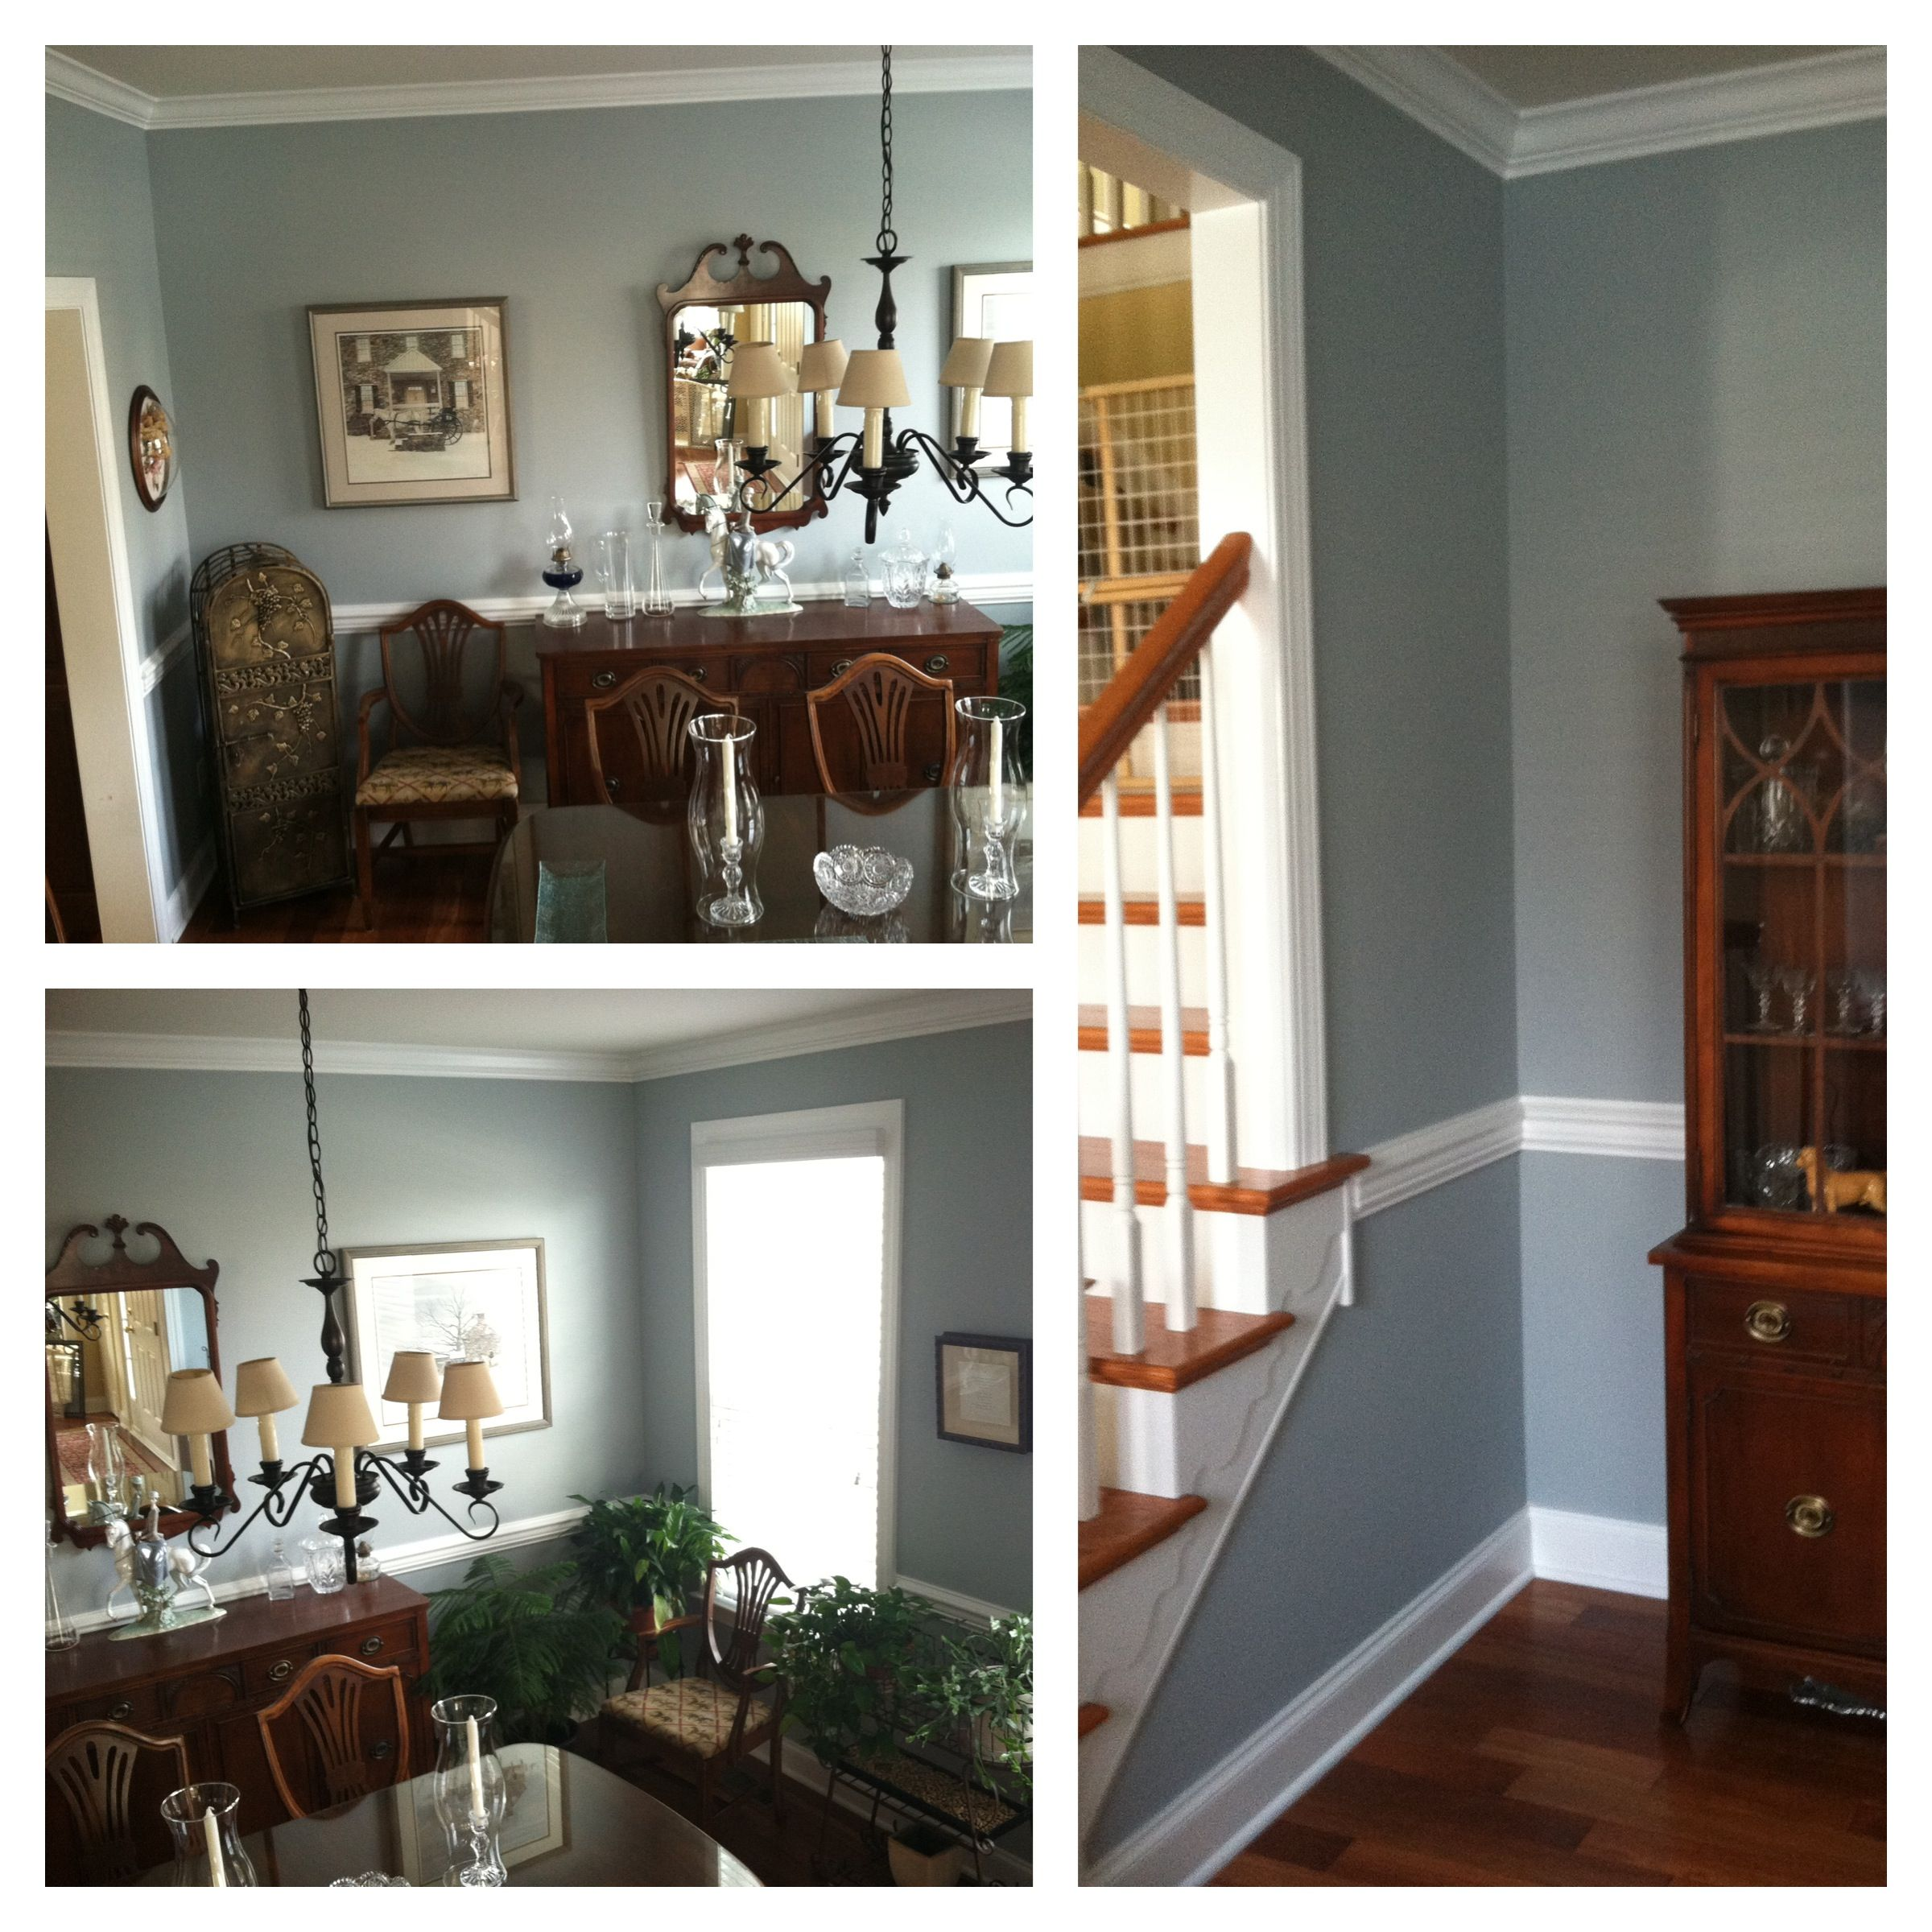 Benjamin Moore 1592. I Had It Matched At Sherwin Williams And Used Cashmere Flat